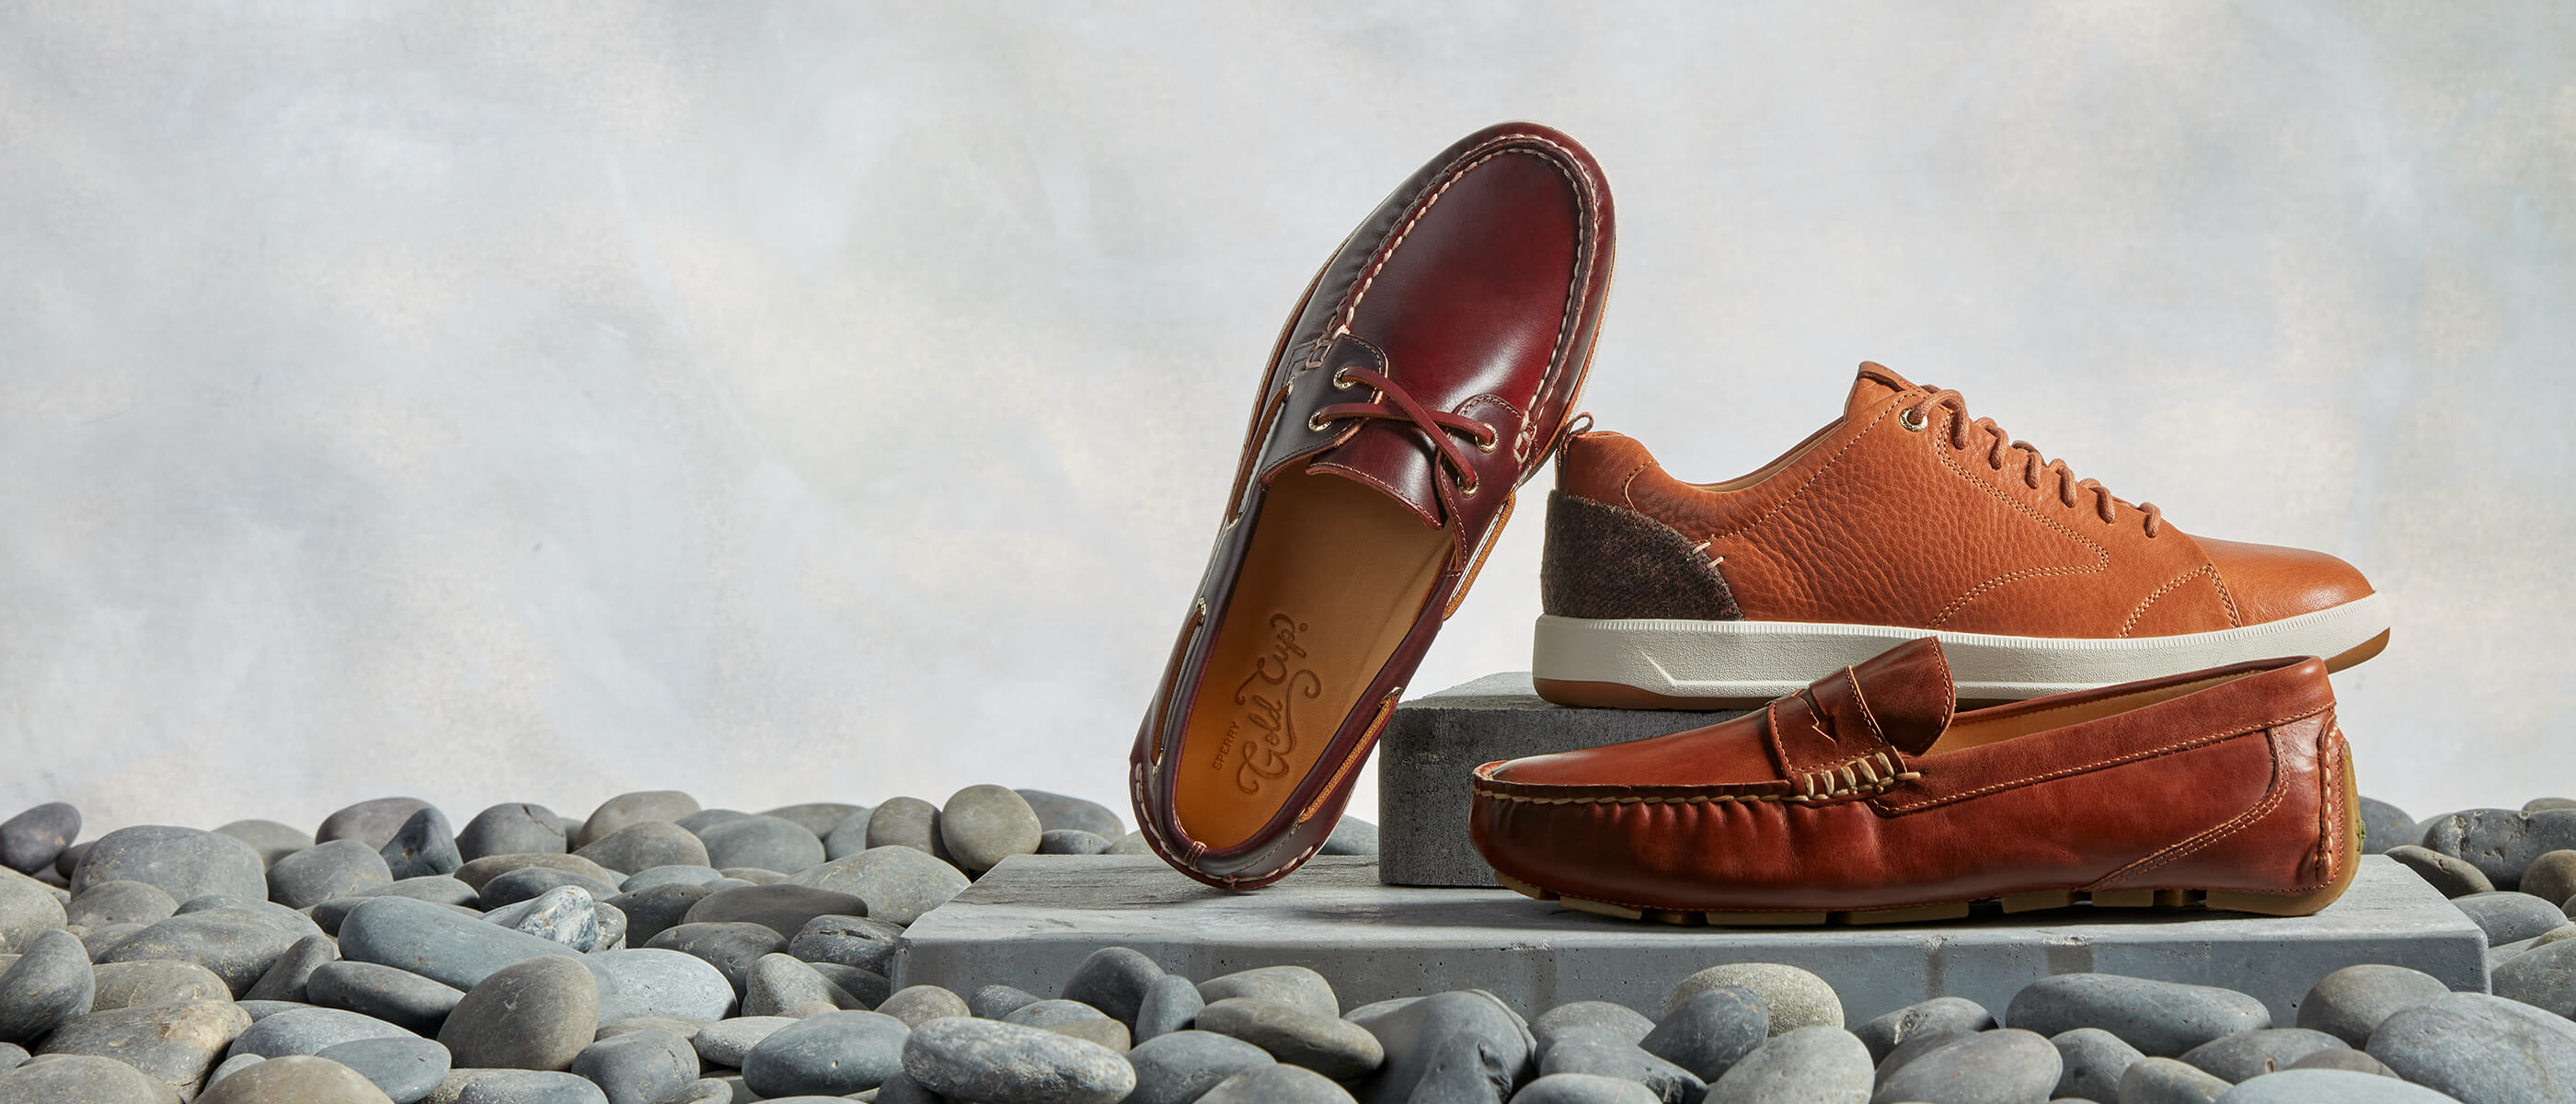 Brown Sperry Gold Cup shoes on a concrete slab surrounded by grey river stones.